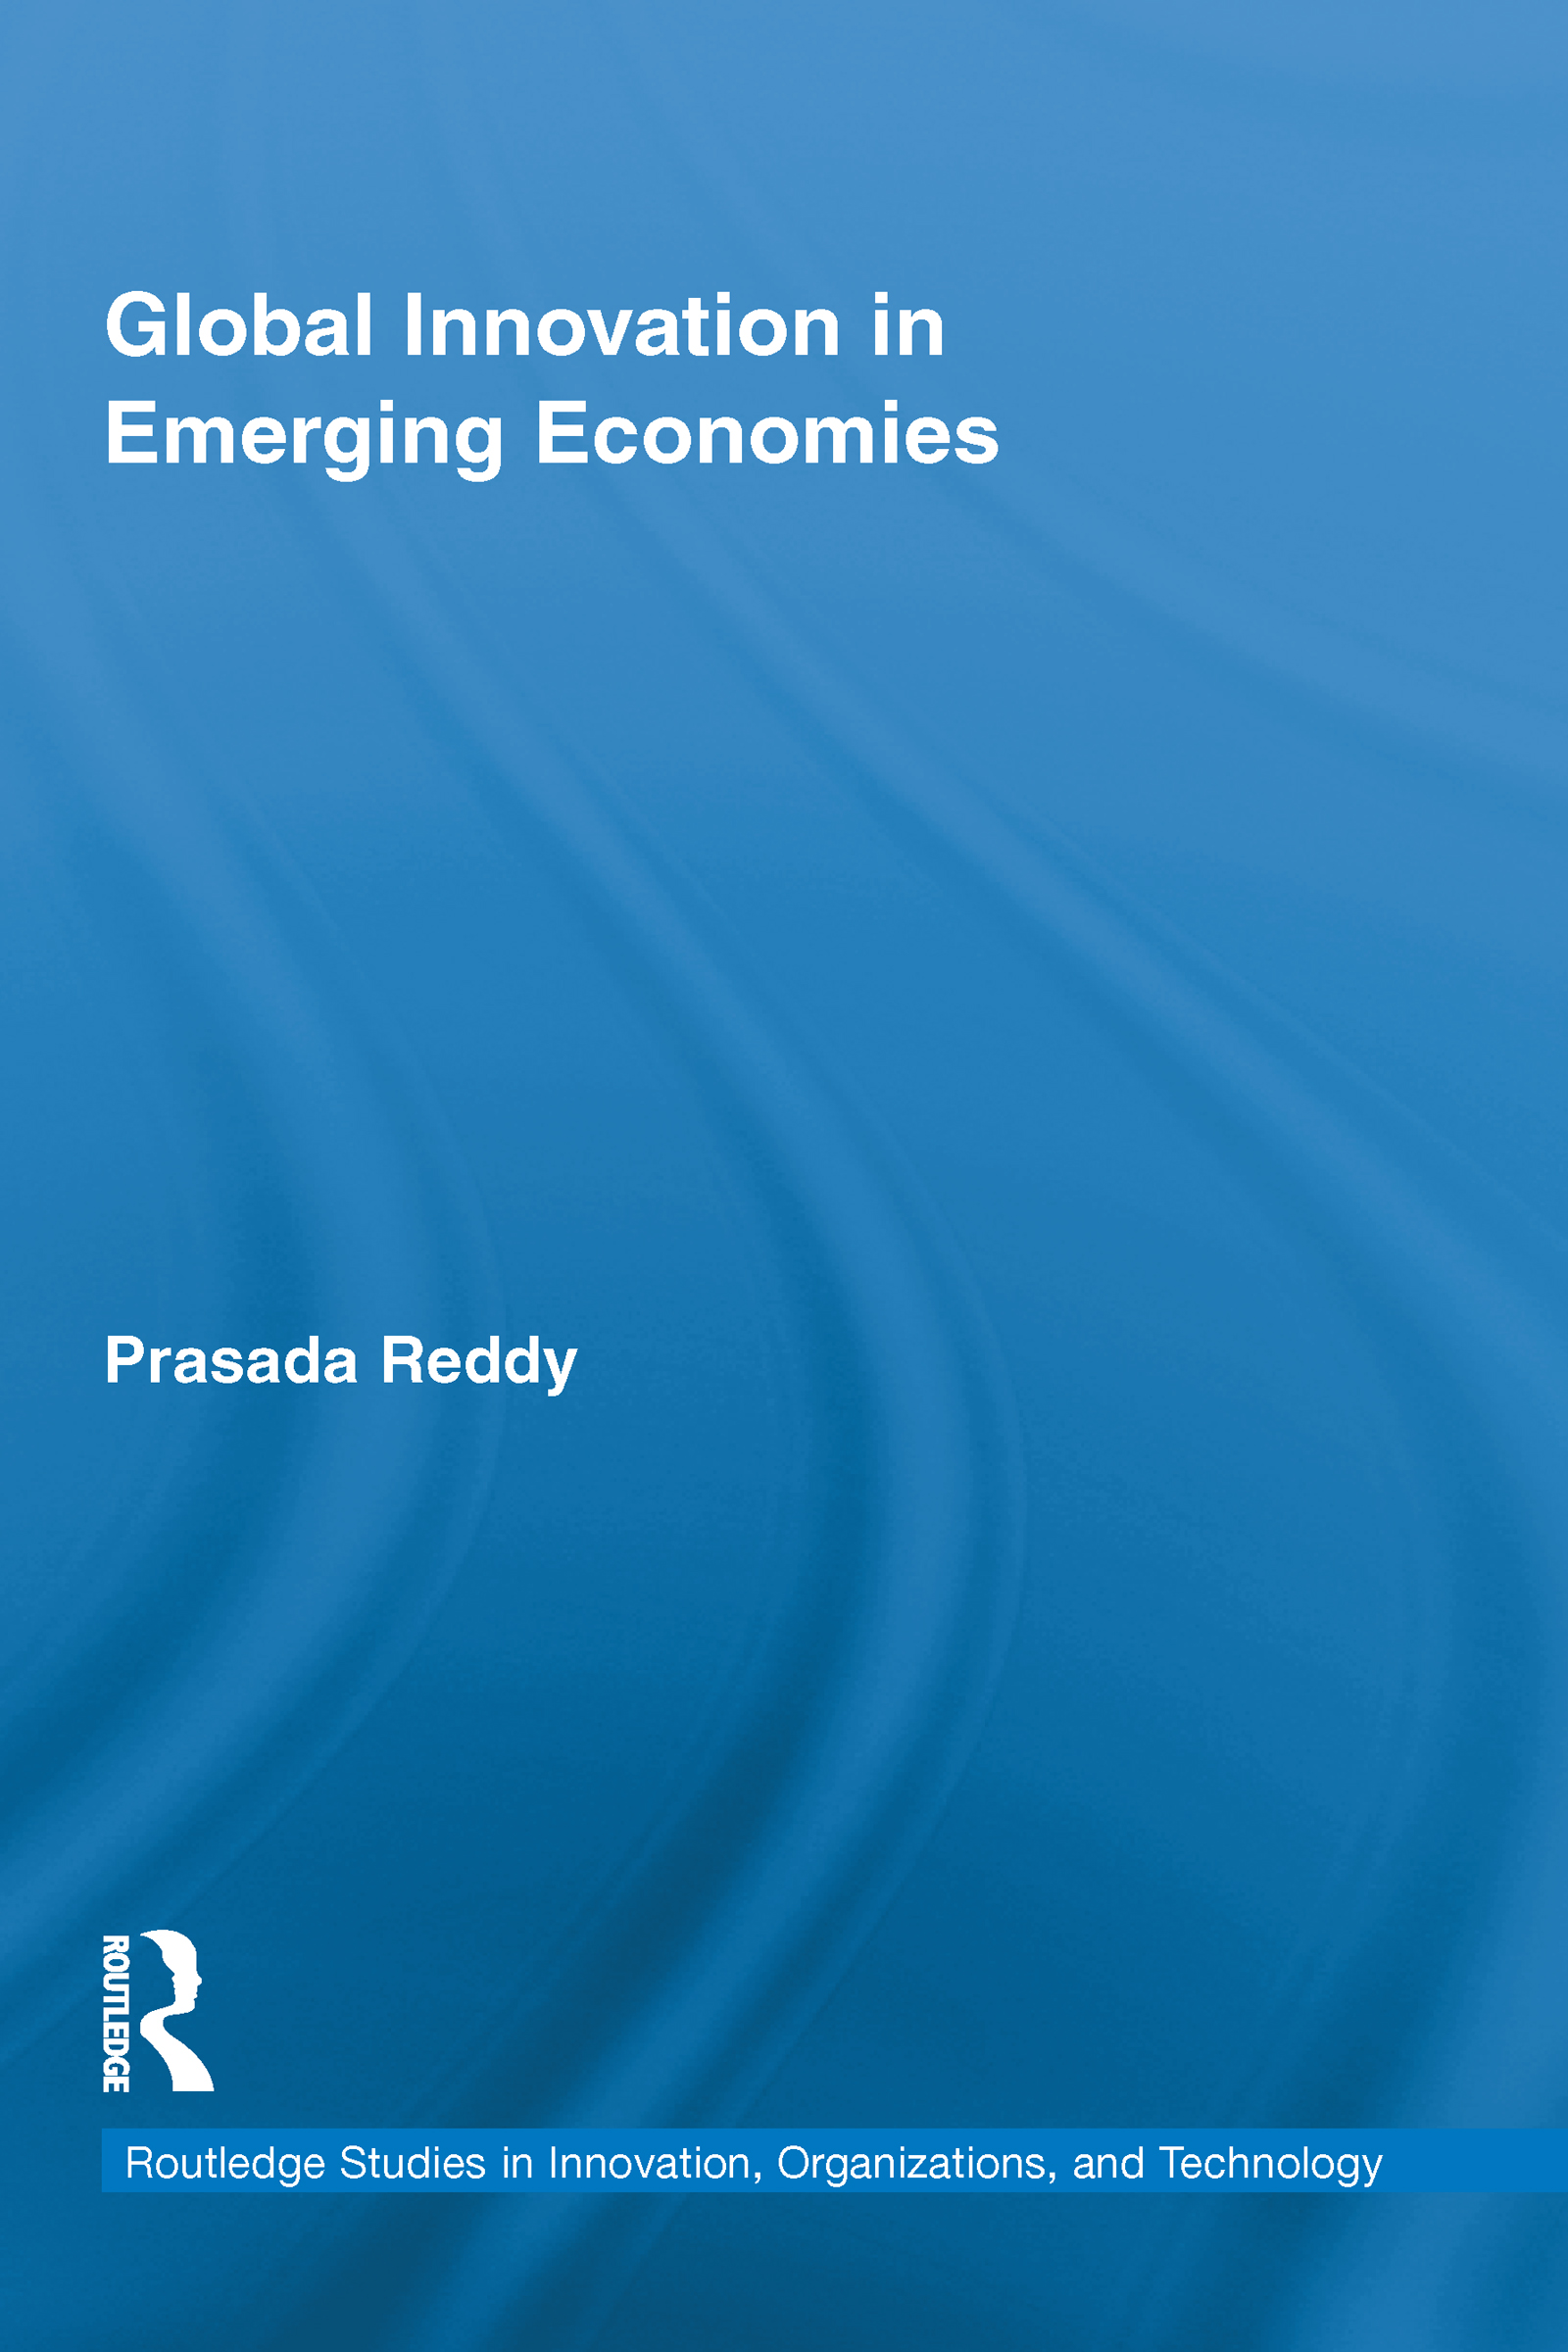 Global Innovation in Emerging Economies